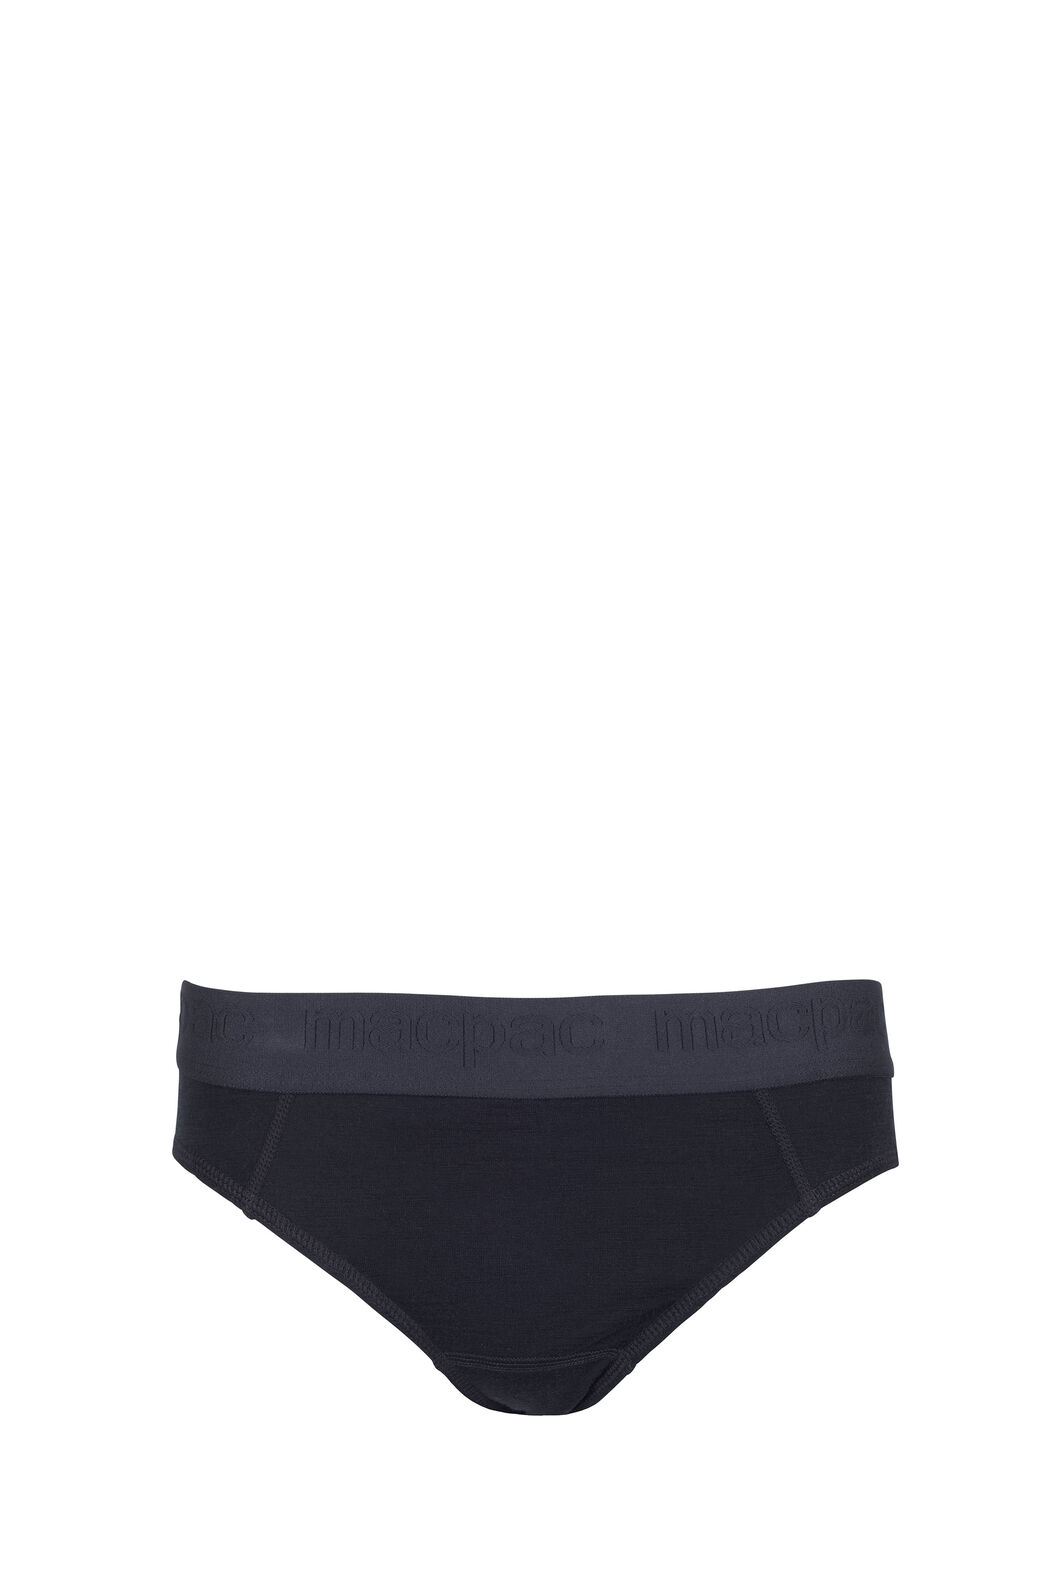 Macpac 180 Merino Brief — Women's, Black, hi-res